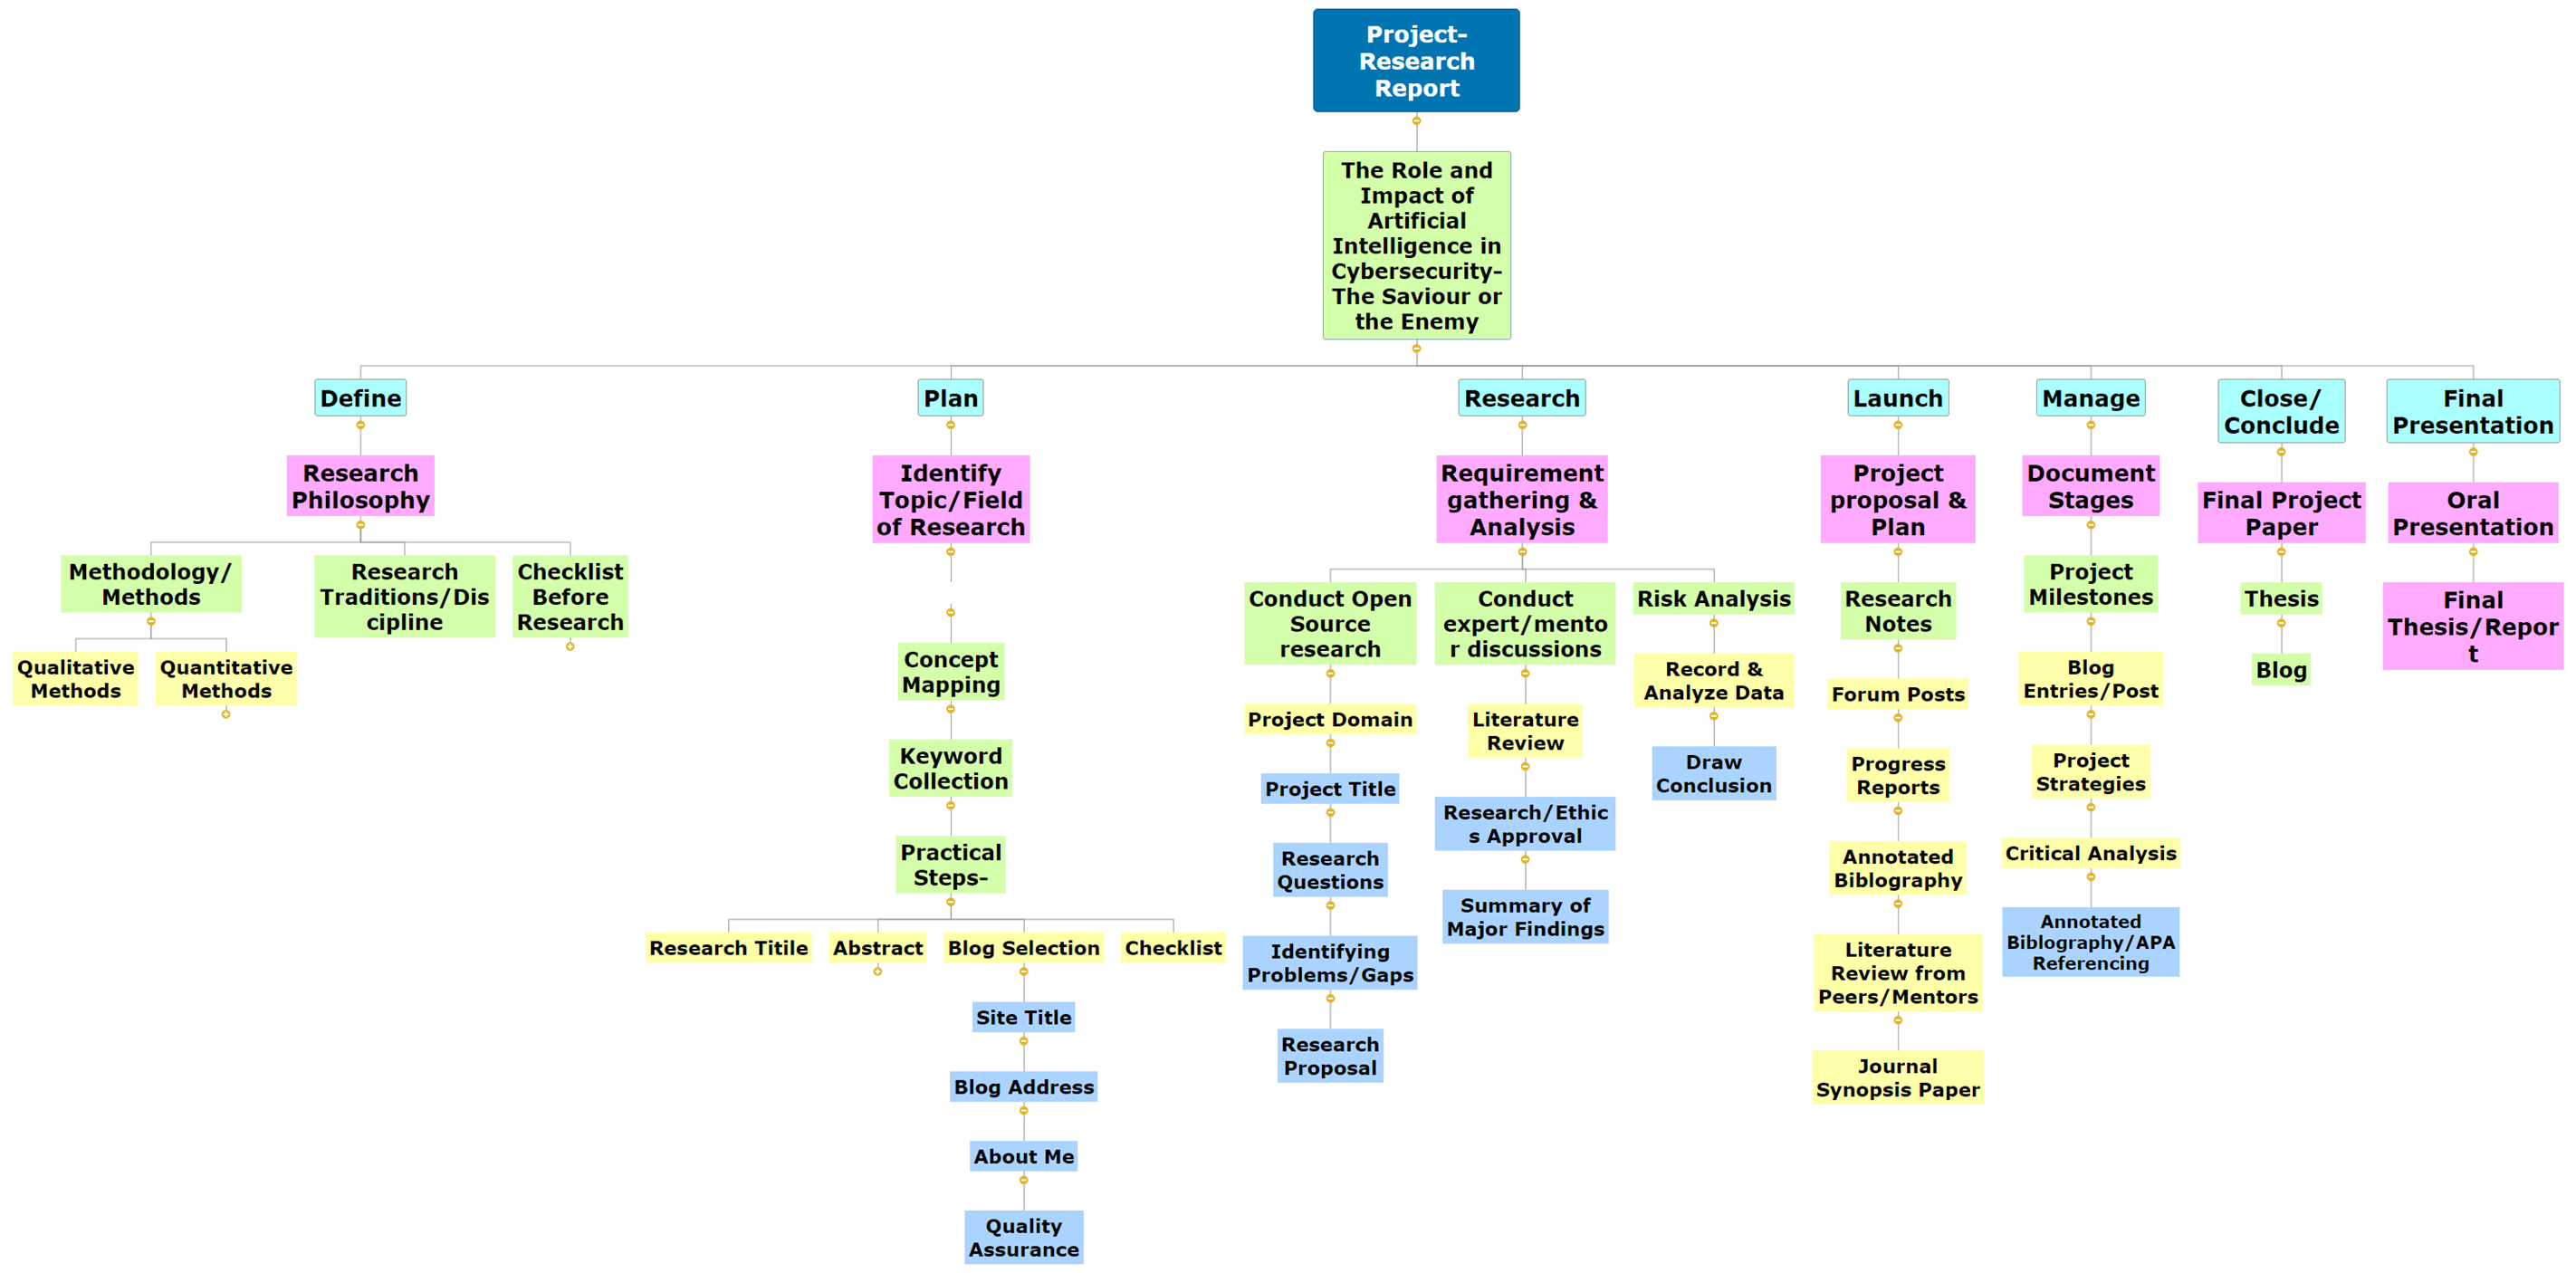 Project-Research Report latest Mind Map